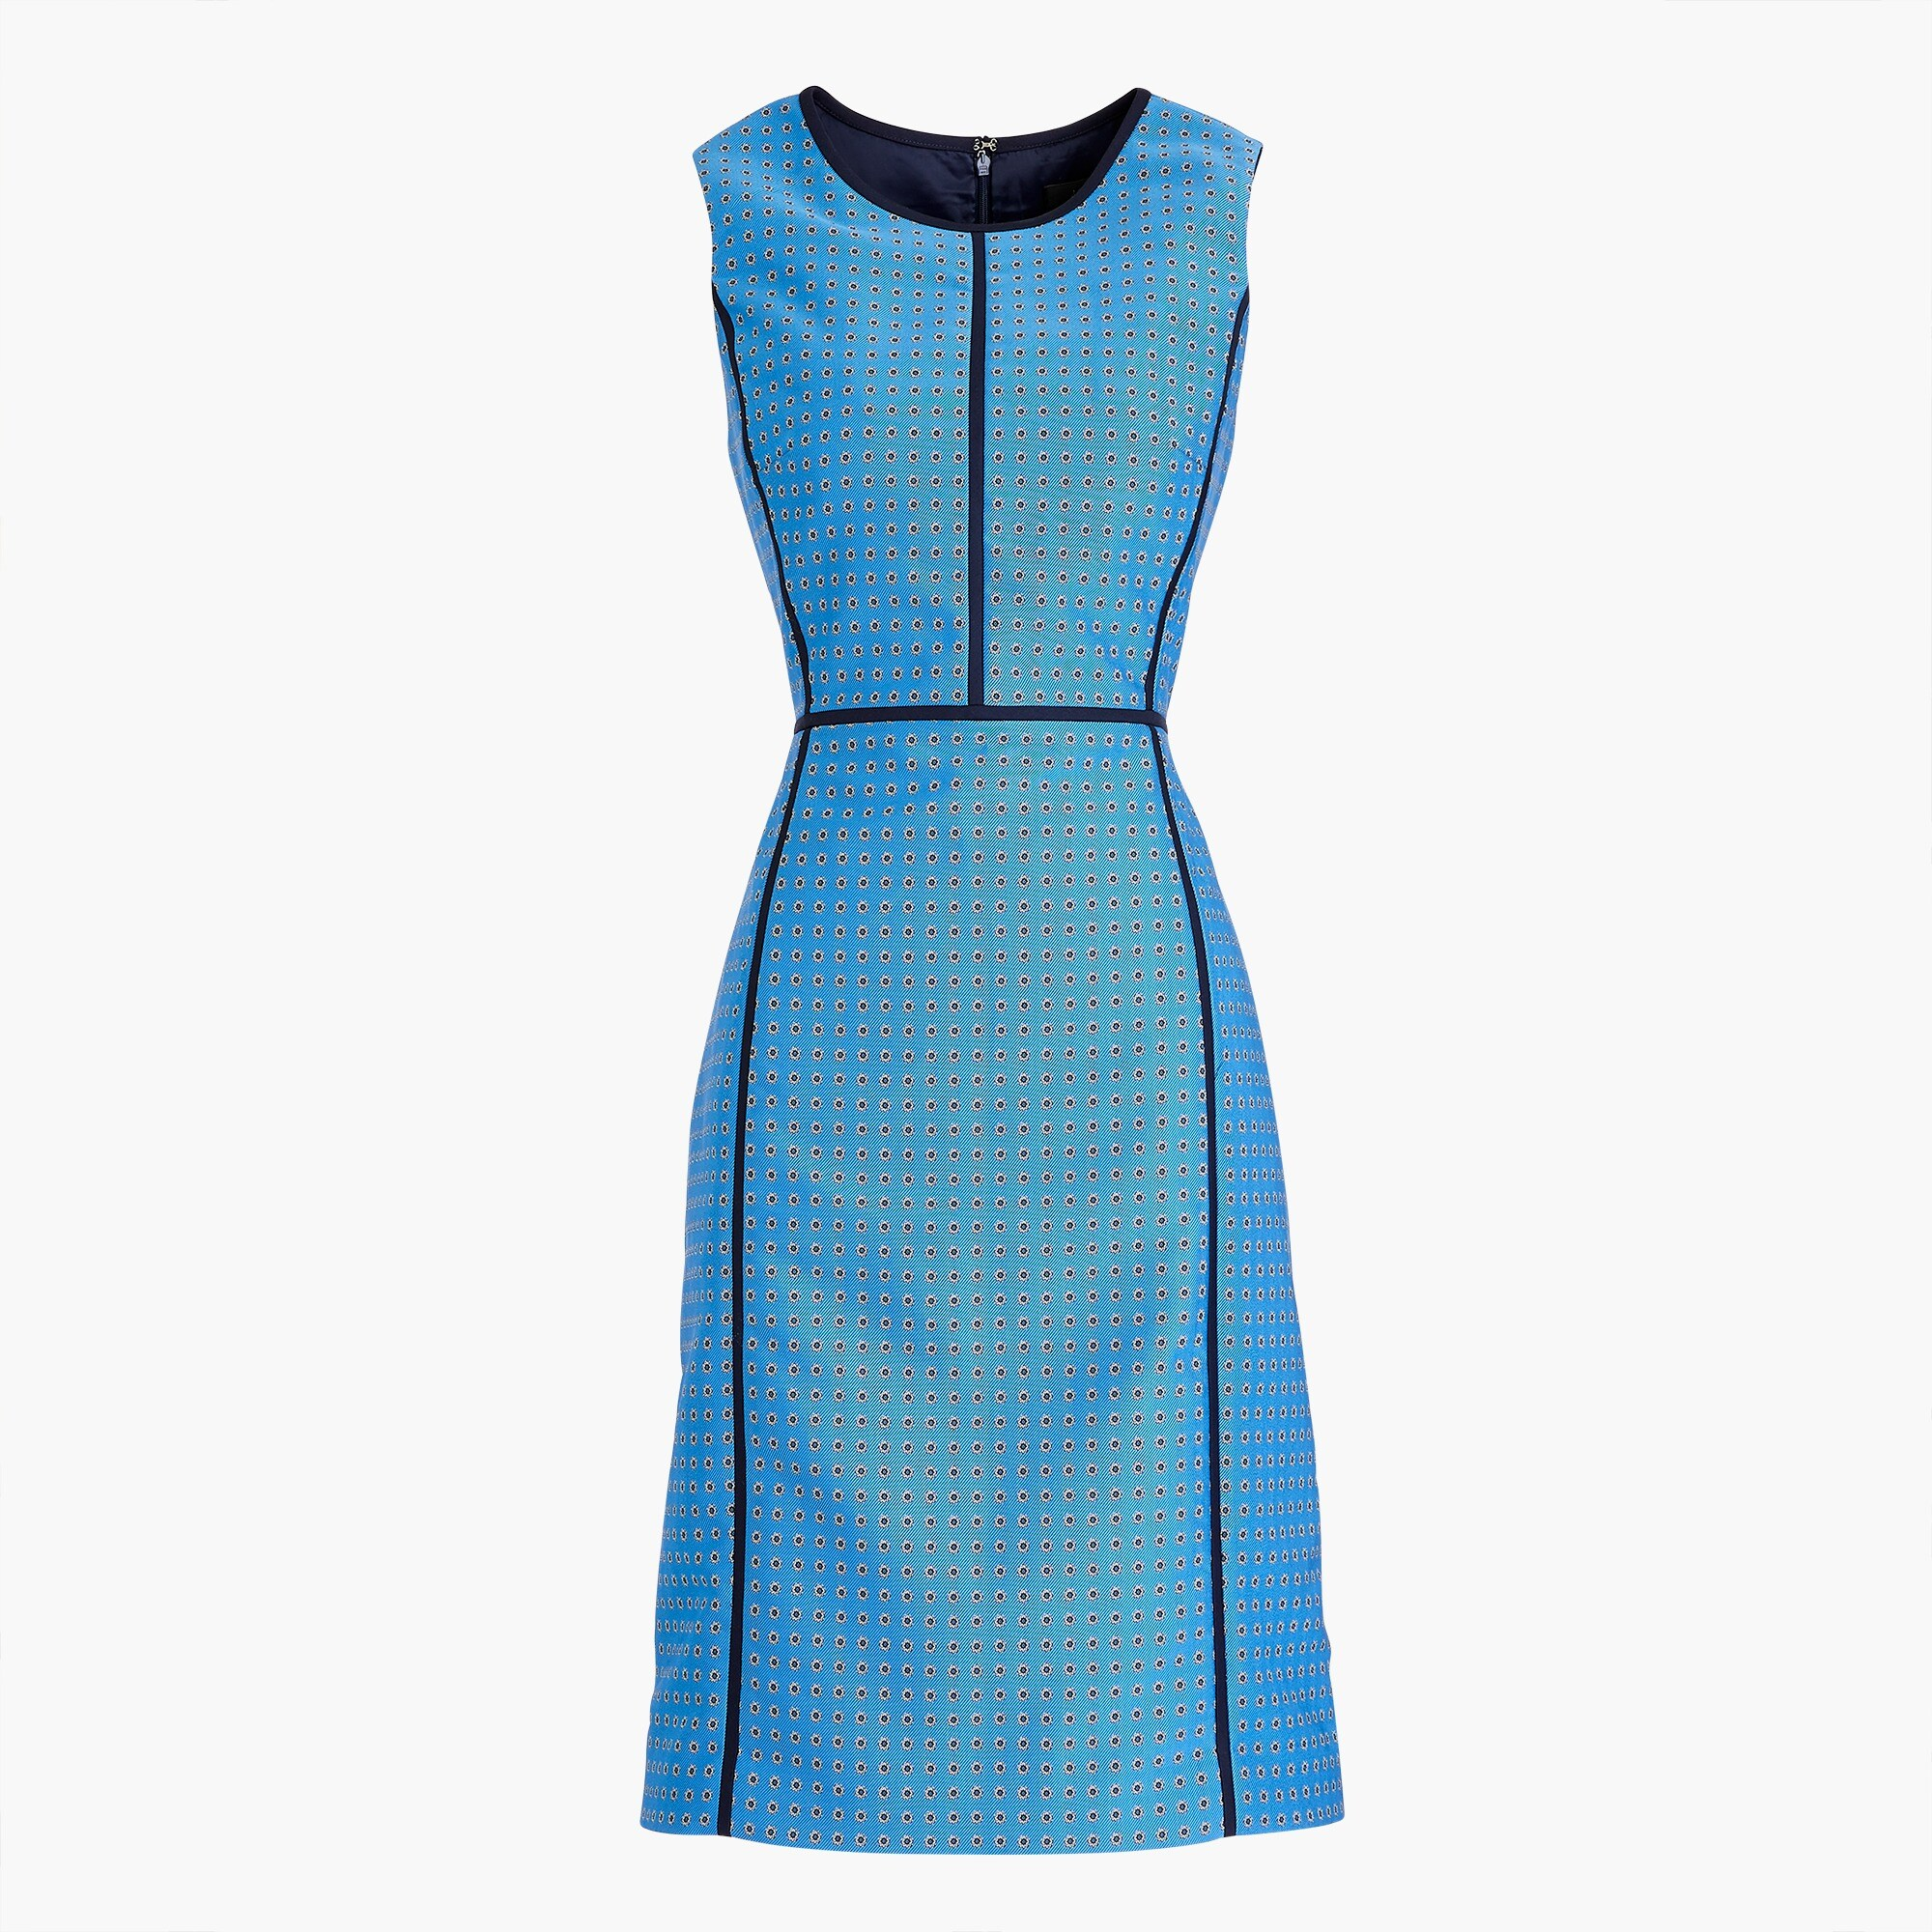 Image 2 for Petite paneled sheath dress